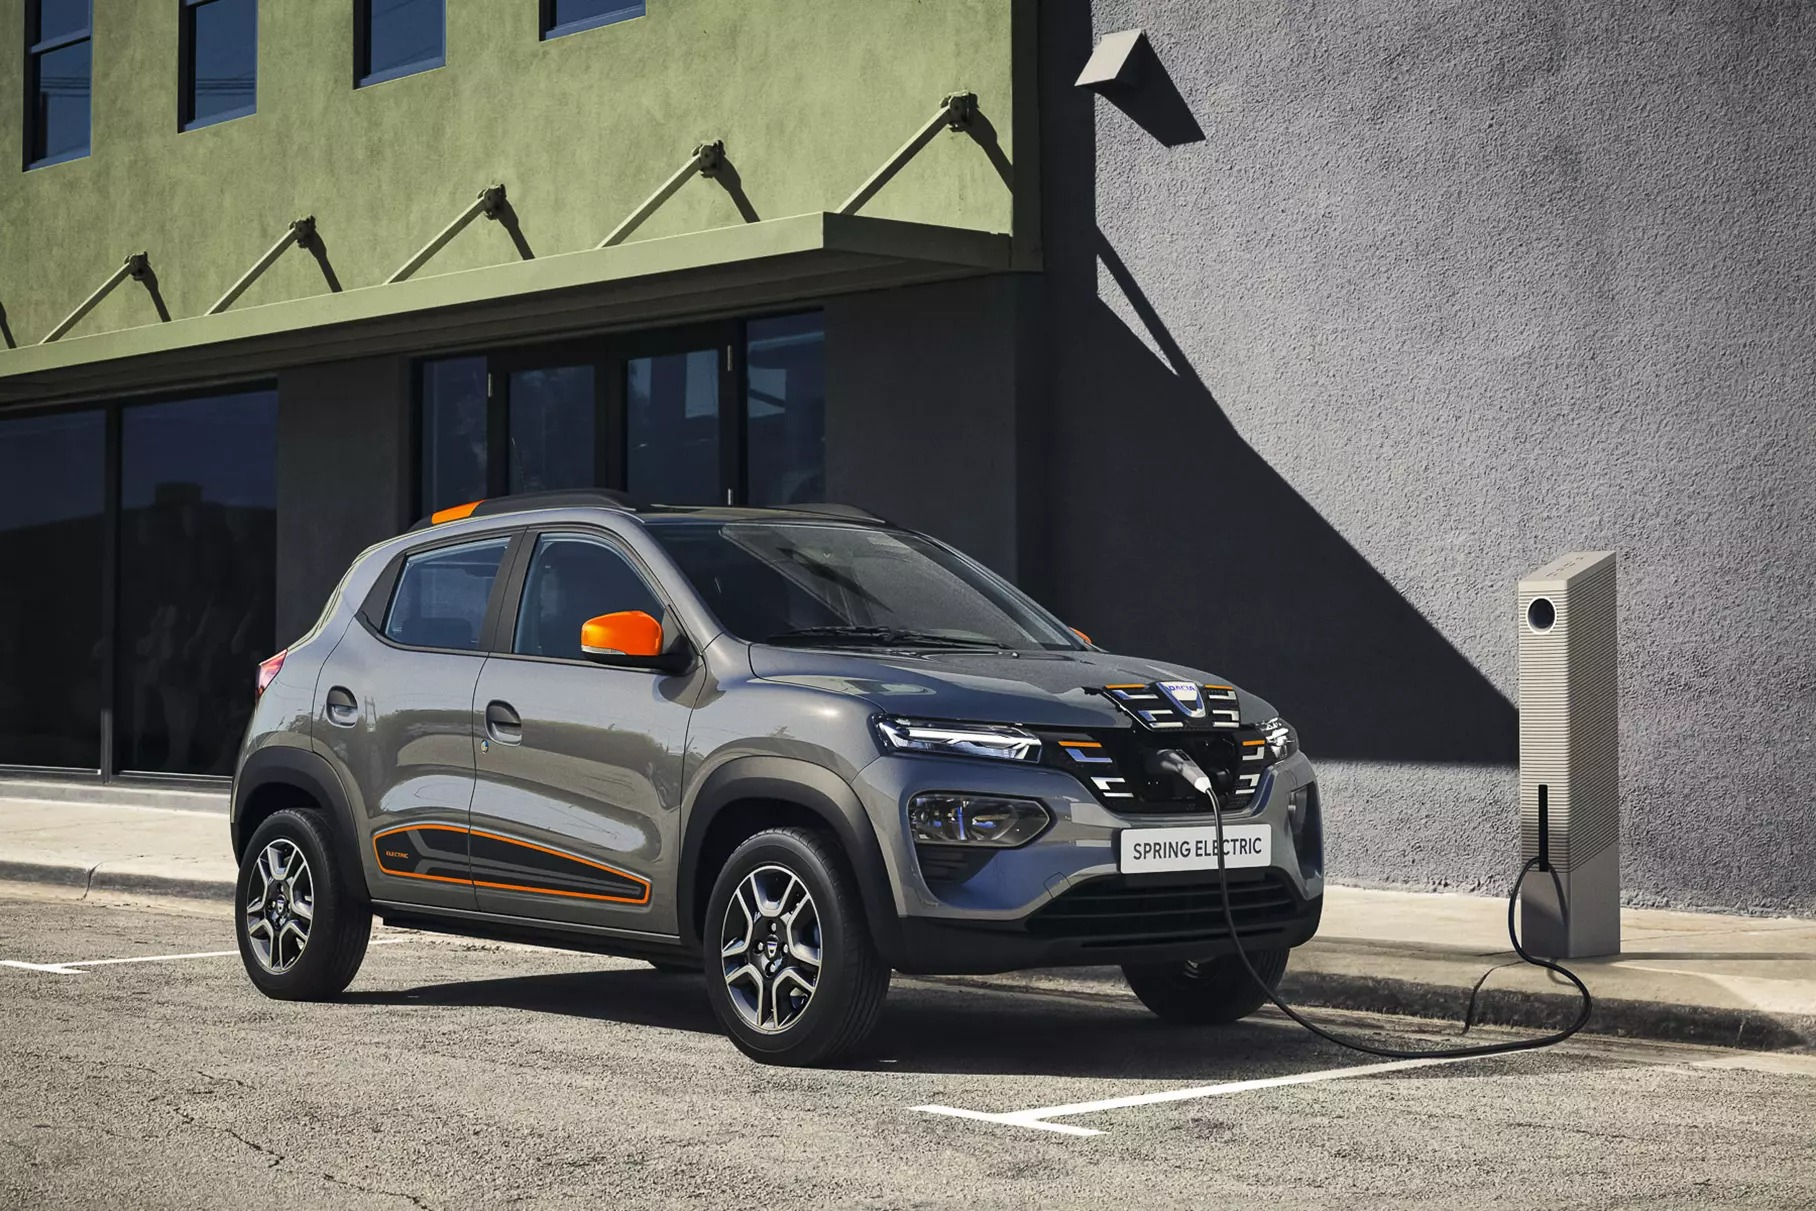 The Romanian affordable car marque seems determined not to shun from electrification, but its next Renault 5-based EV will not come until 2026 or later.